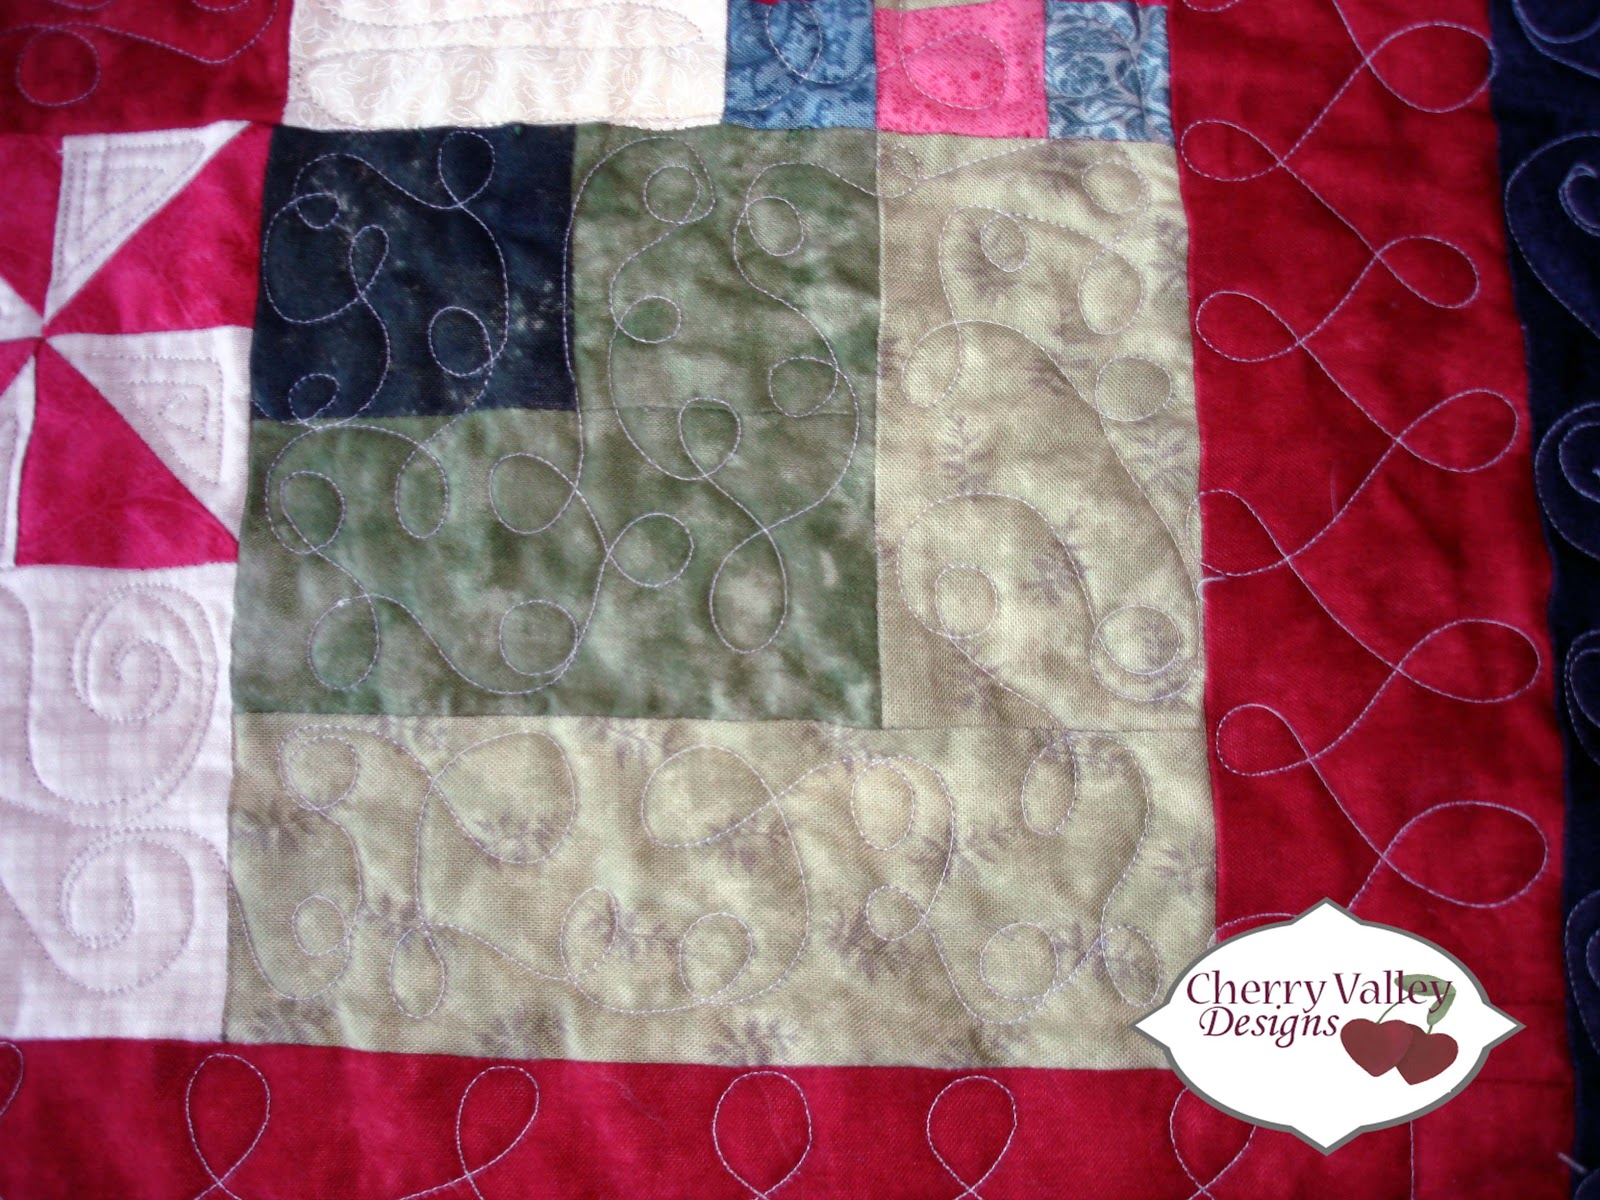 Longarm+Cherry+Valley+Designs